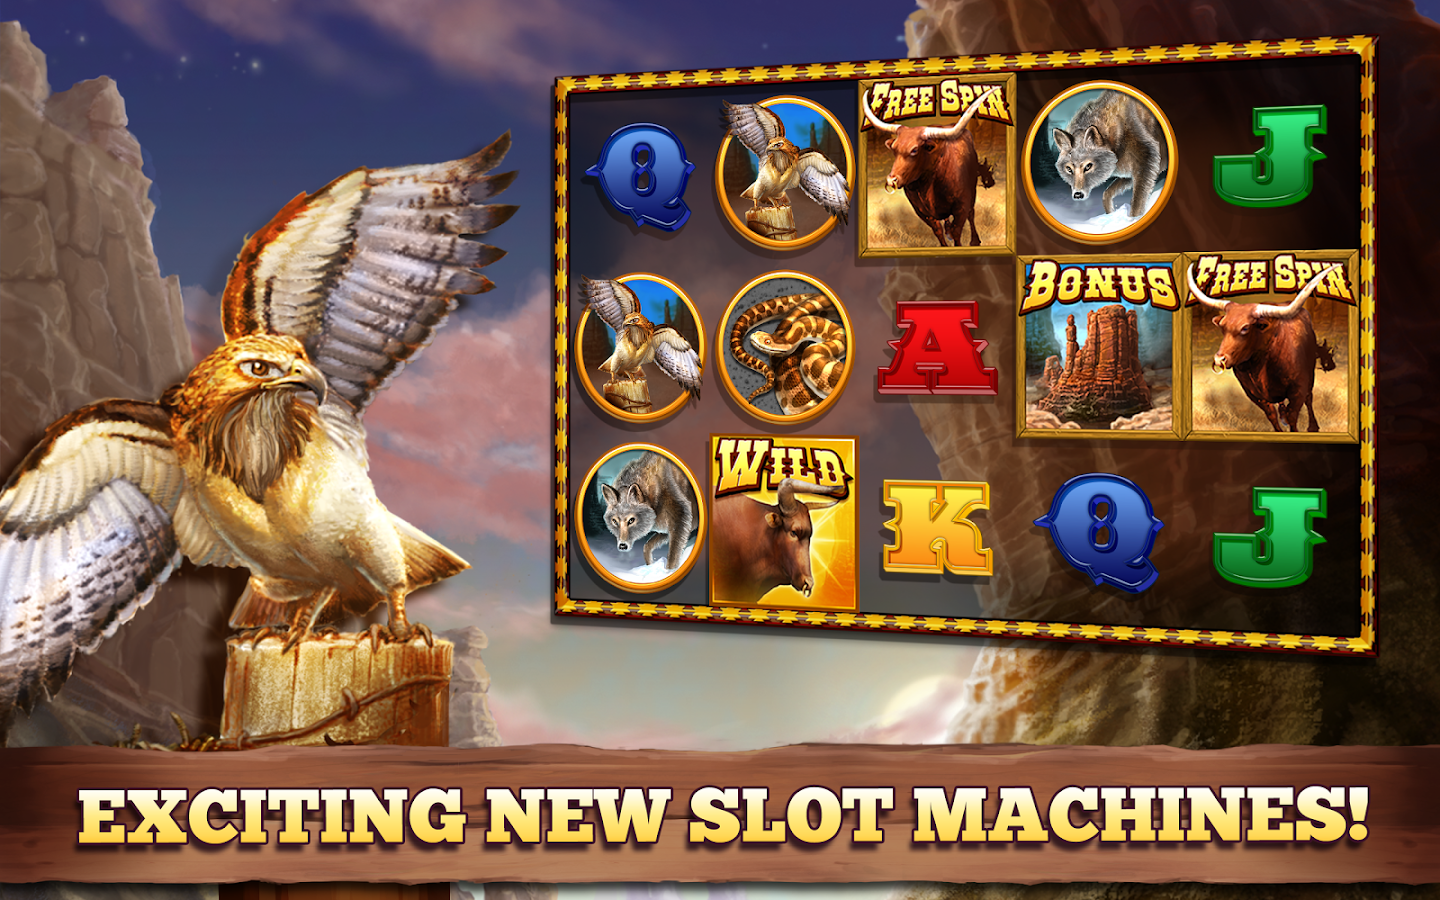 Longhorn Deluxe Slot Machine - Play Free Casino Slot Games